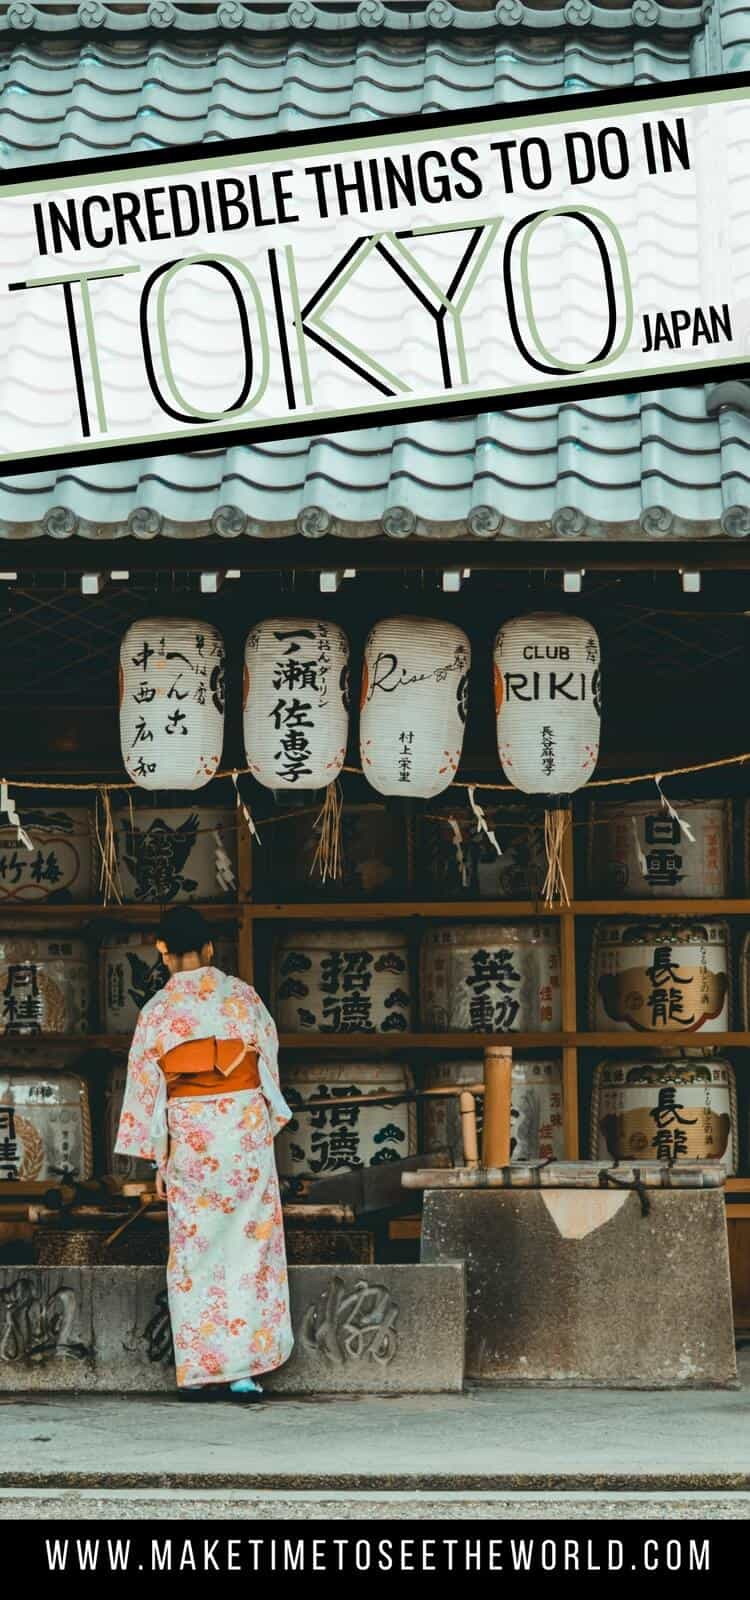 Things to do in Tokyo Japan lettering overlayed on an image of a geisha in front of a traditional lantern shop